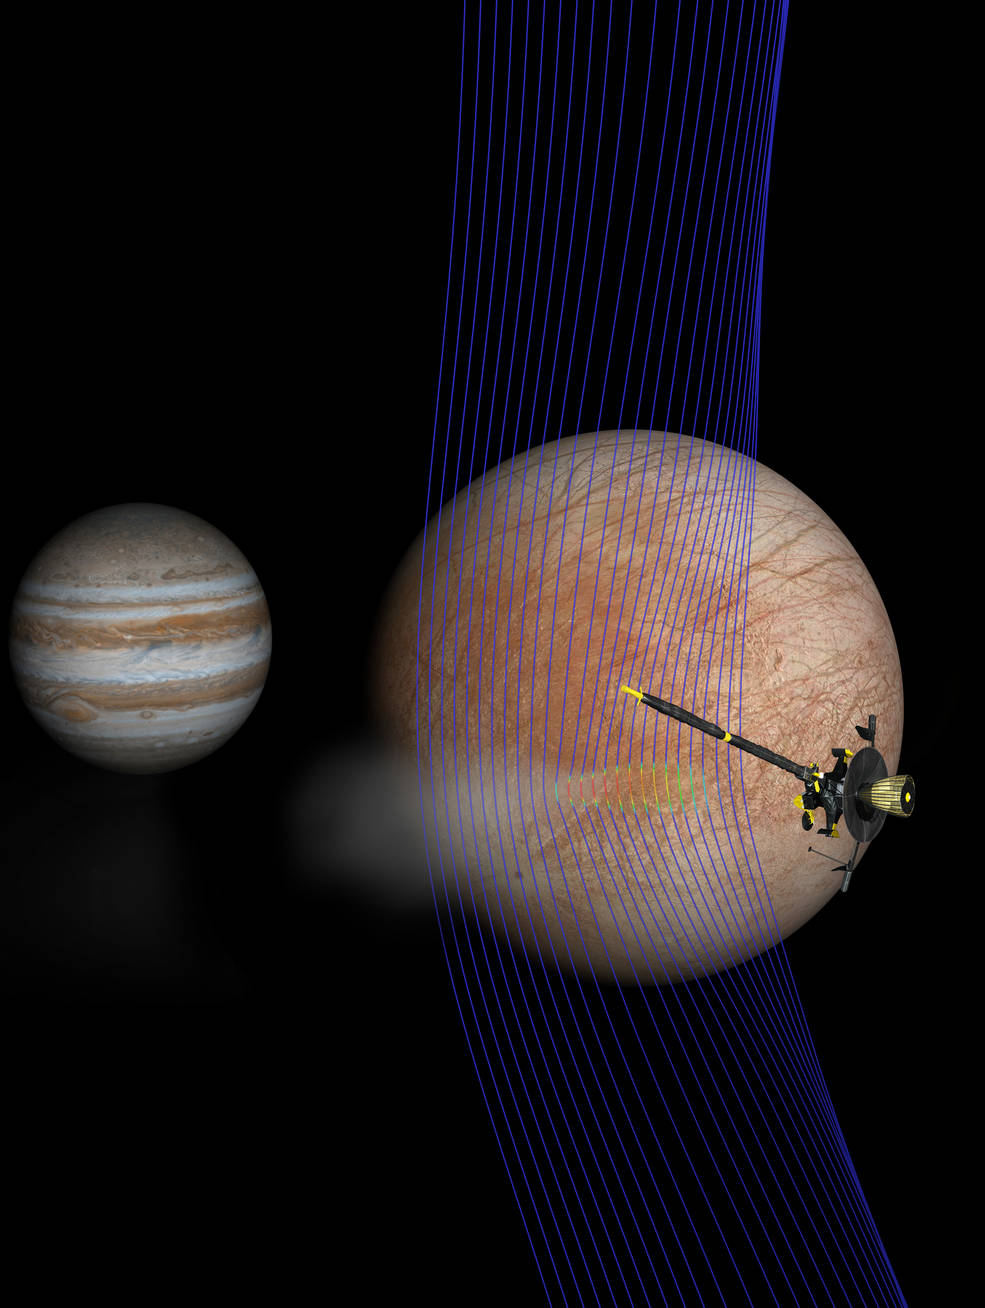 Artist's illustration of Jupiter and Europa with the Galileo spacecraft after its pass through a plume erupting from Europa